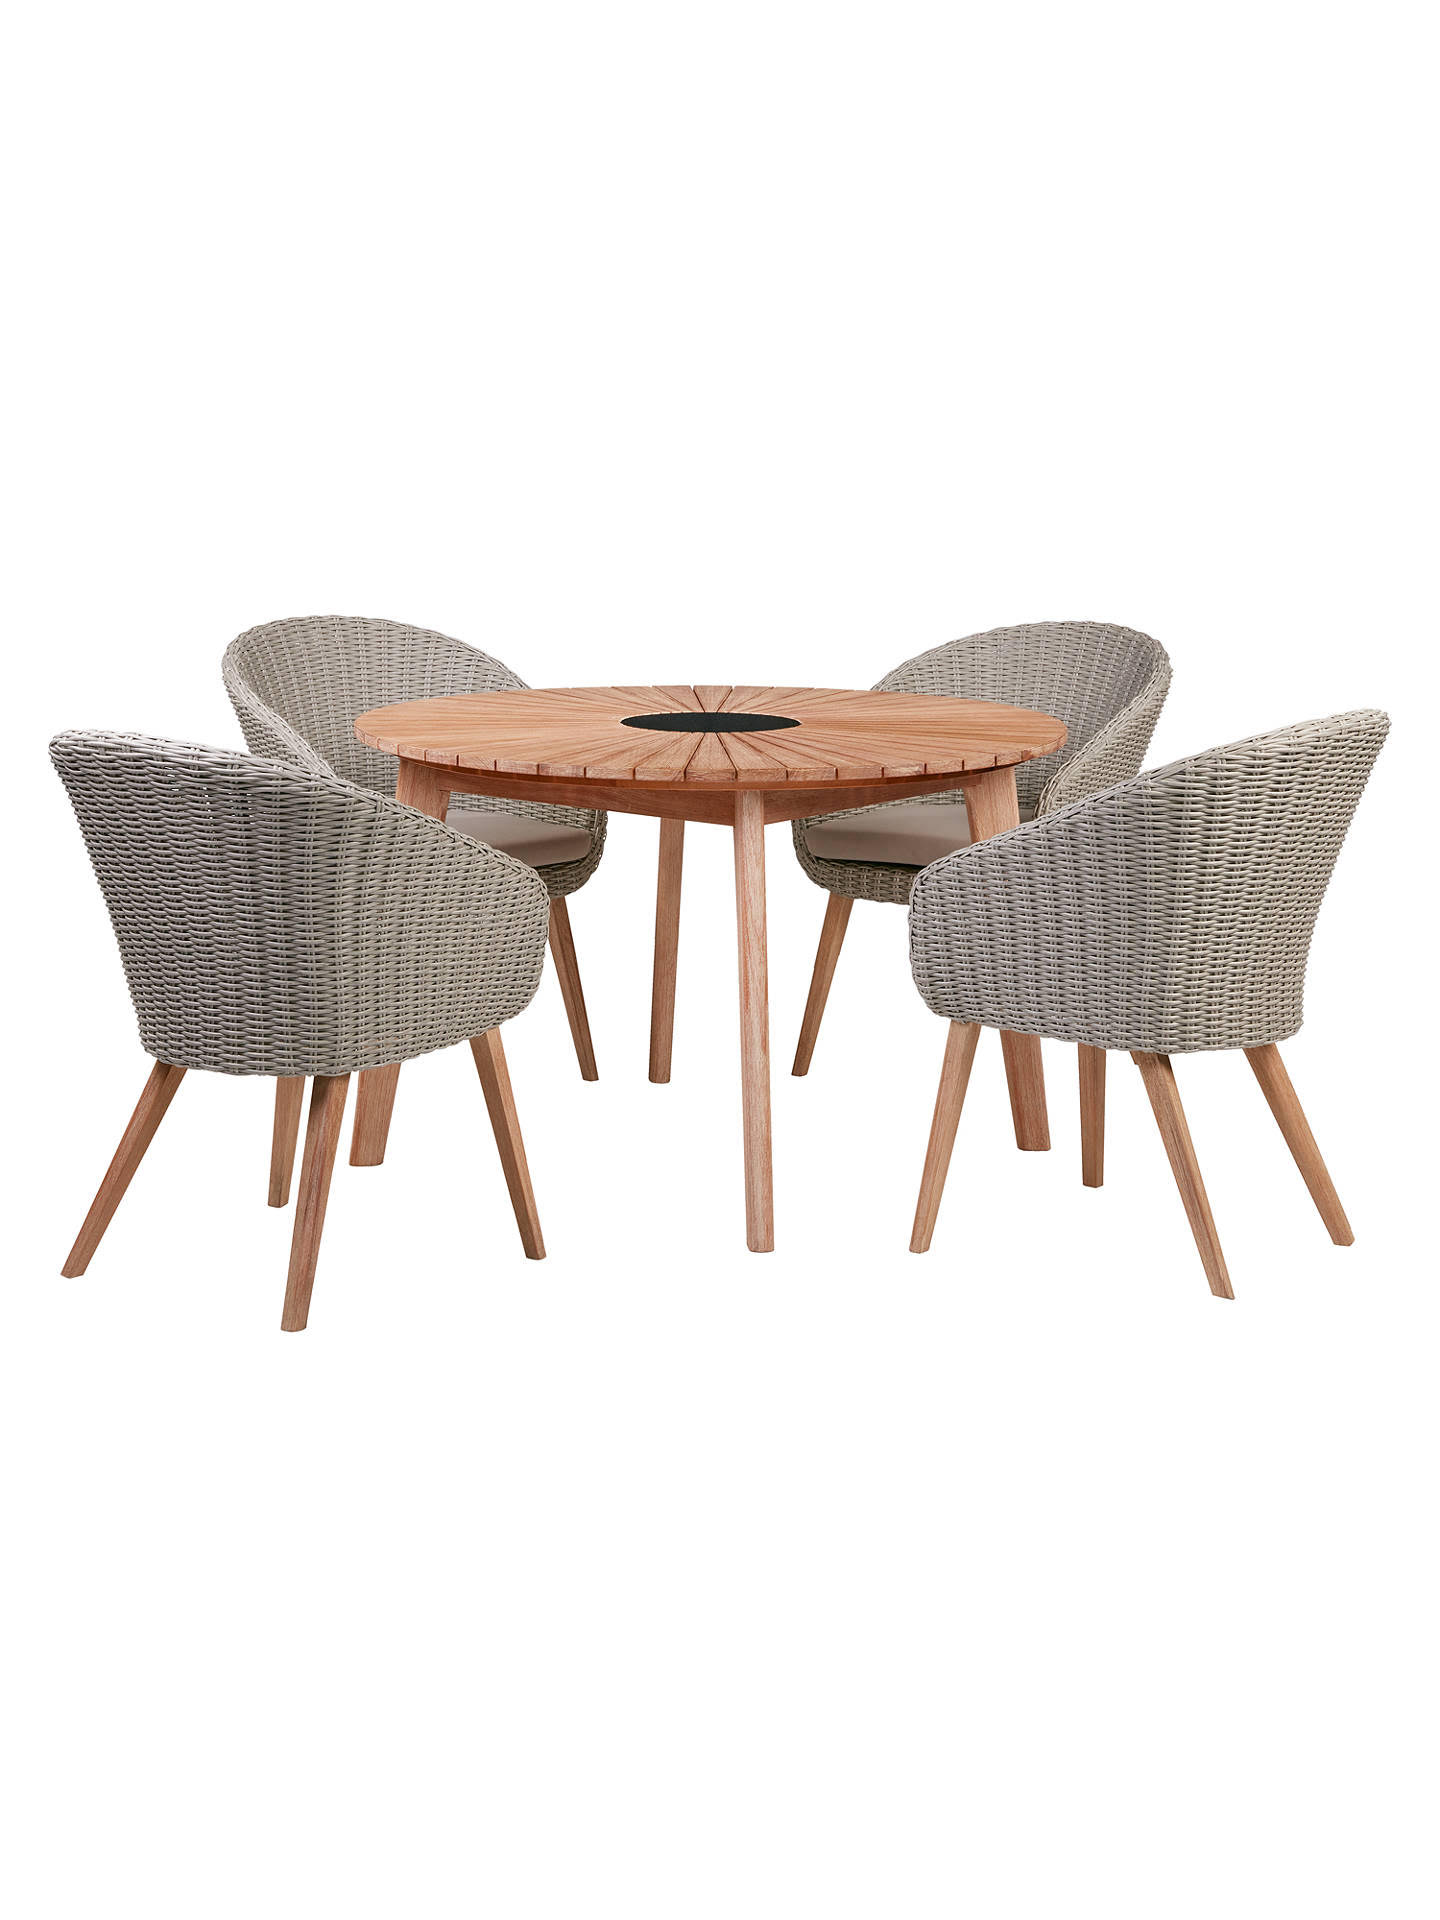 Lot 30401 - V Brand New To John Lewis Sol Four Seater Round Garden Table & Chairs ISP £999 (John Lewis) Stock